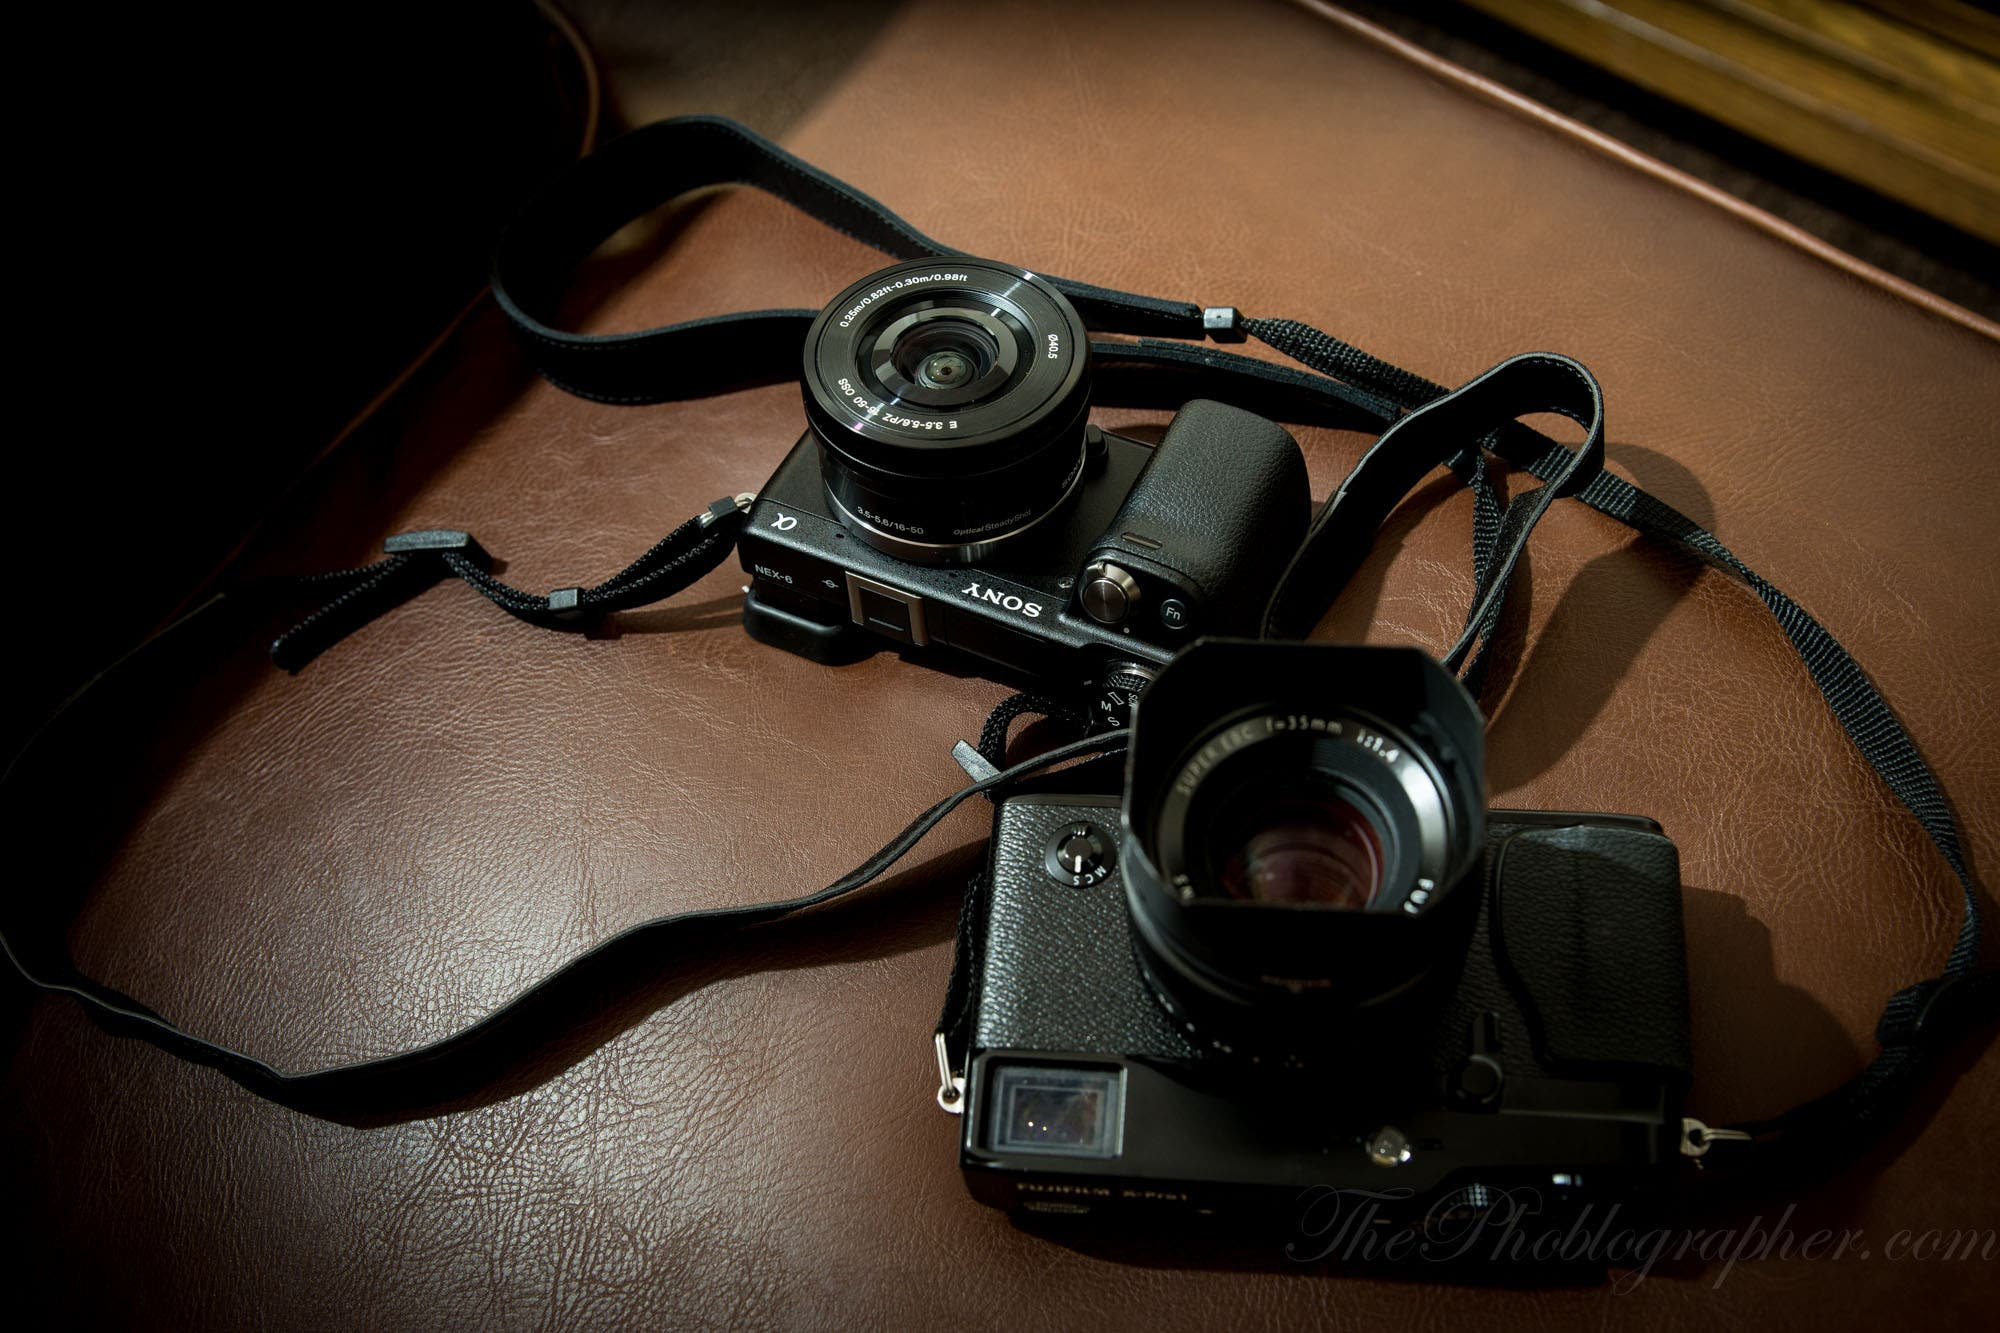 we previously put the fujifilm x pro 1 against the sony nex 6 as a